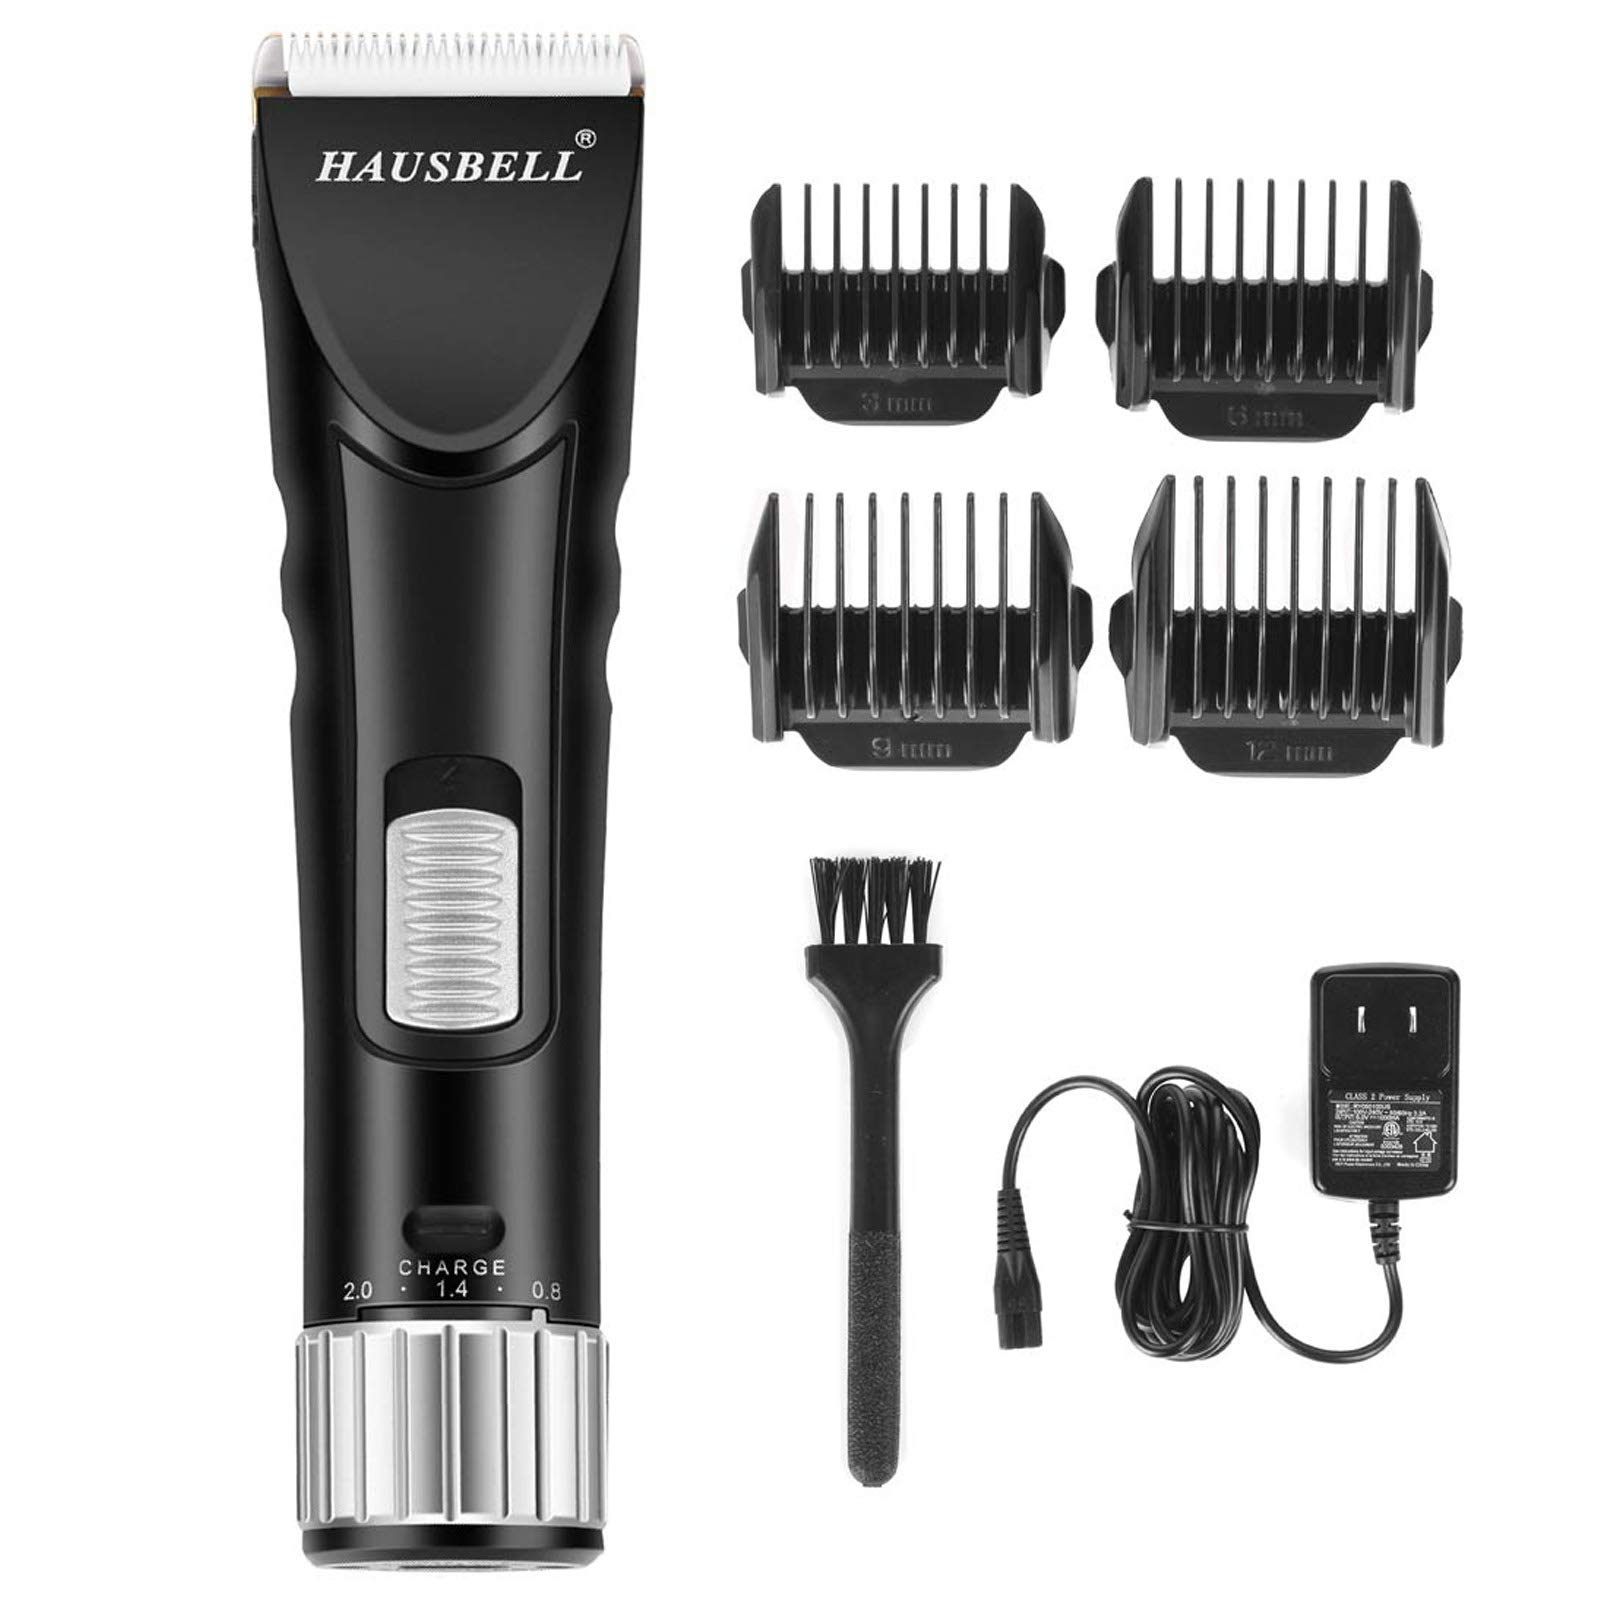 HAUSBELL Hair Clippers, Hair Trimmer, Beard Trimmer for Men, Clippers for Hair Cutting, Barber Clippers, Grooming Kit for Men, Cordless Rechargeable Shaver for Mustache Head Face Beard and Body